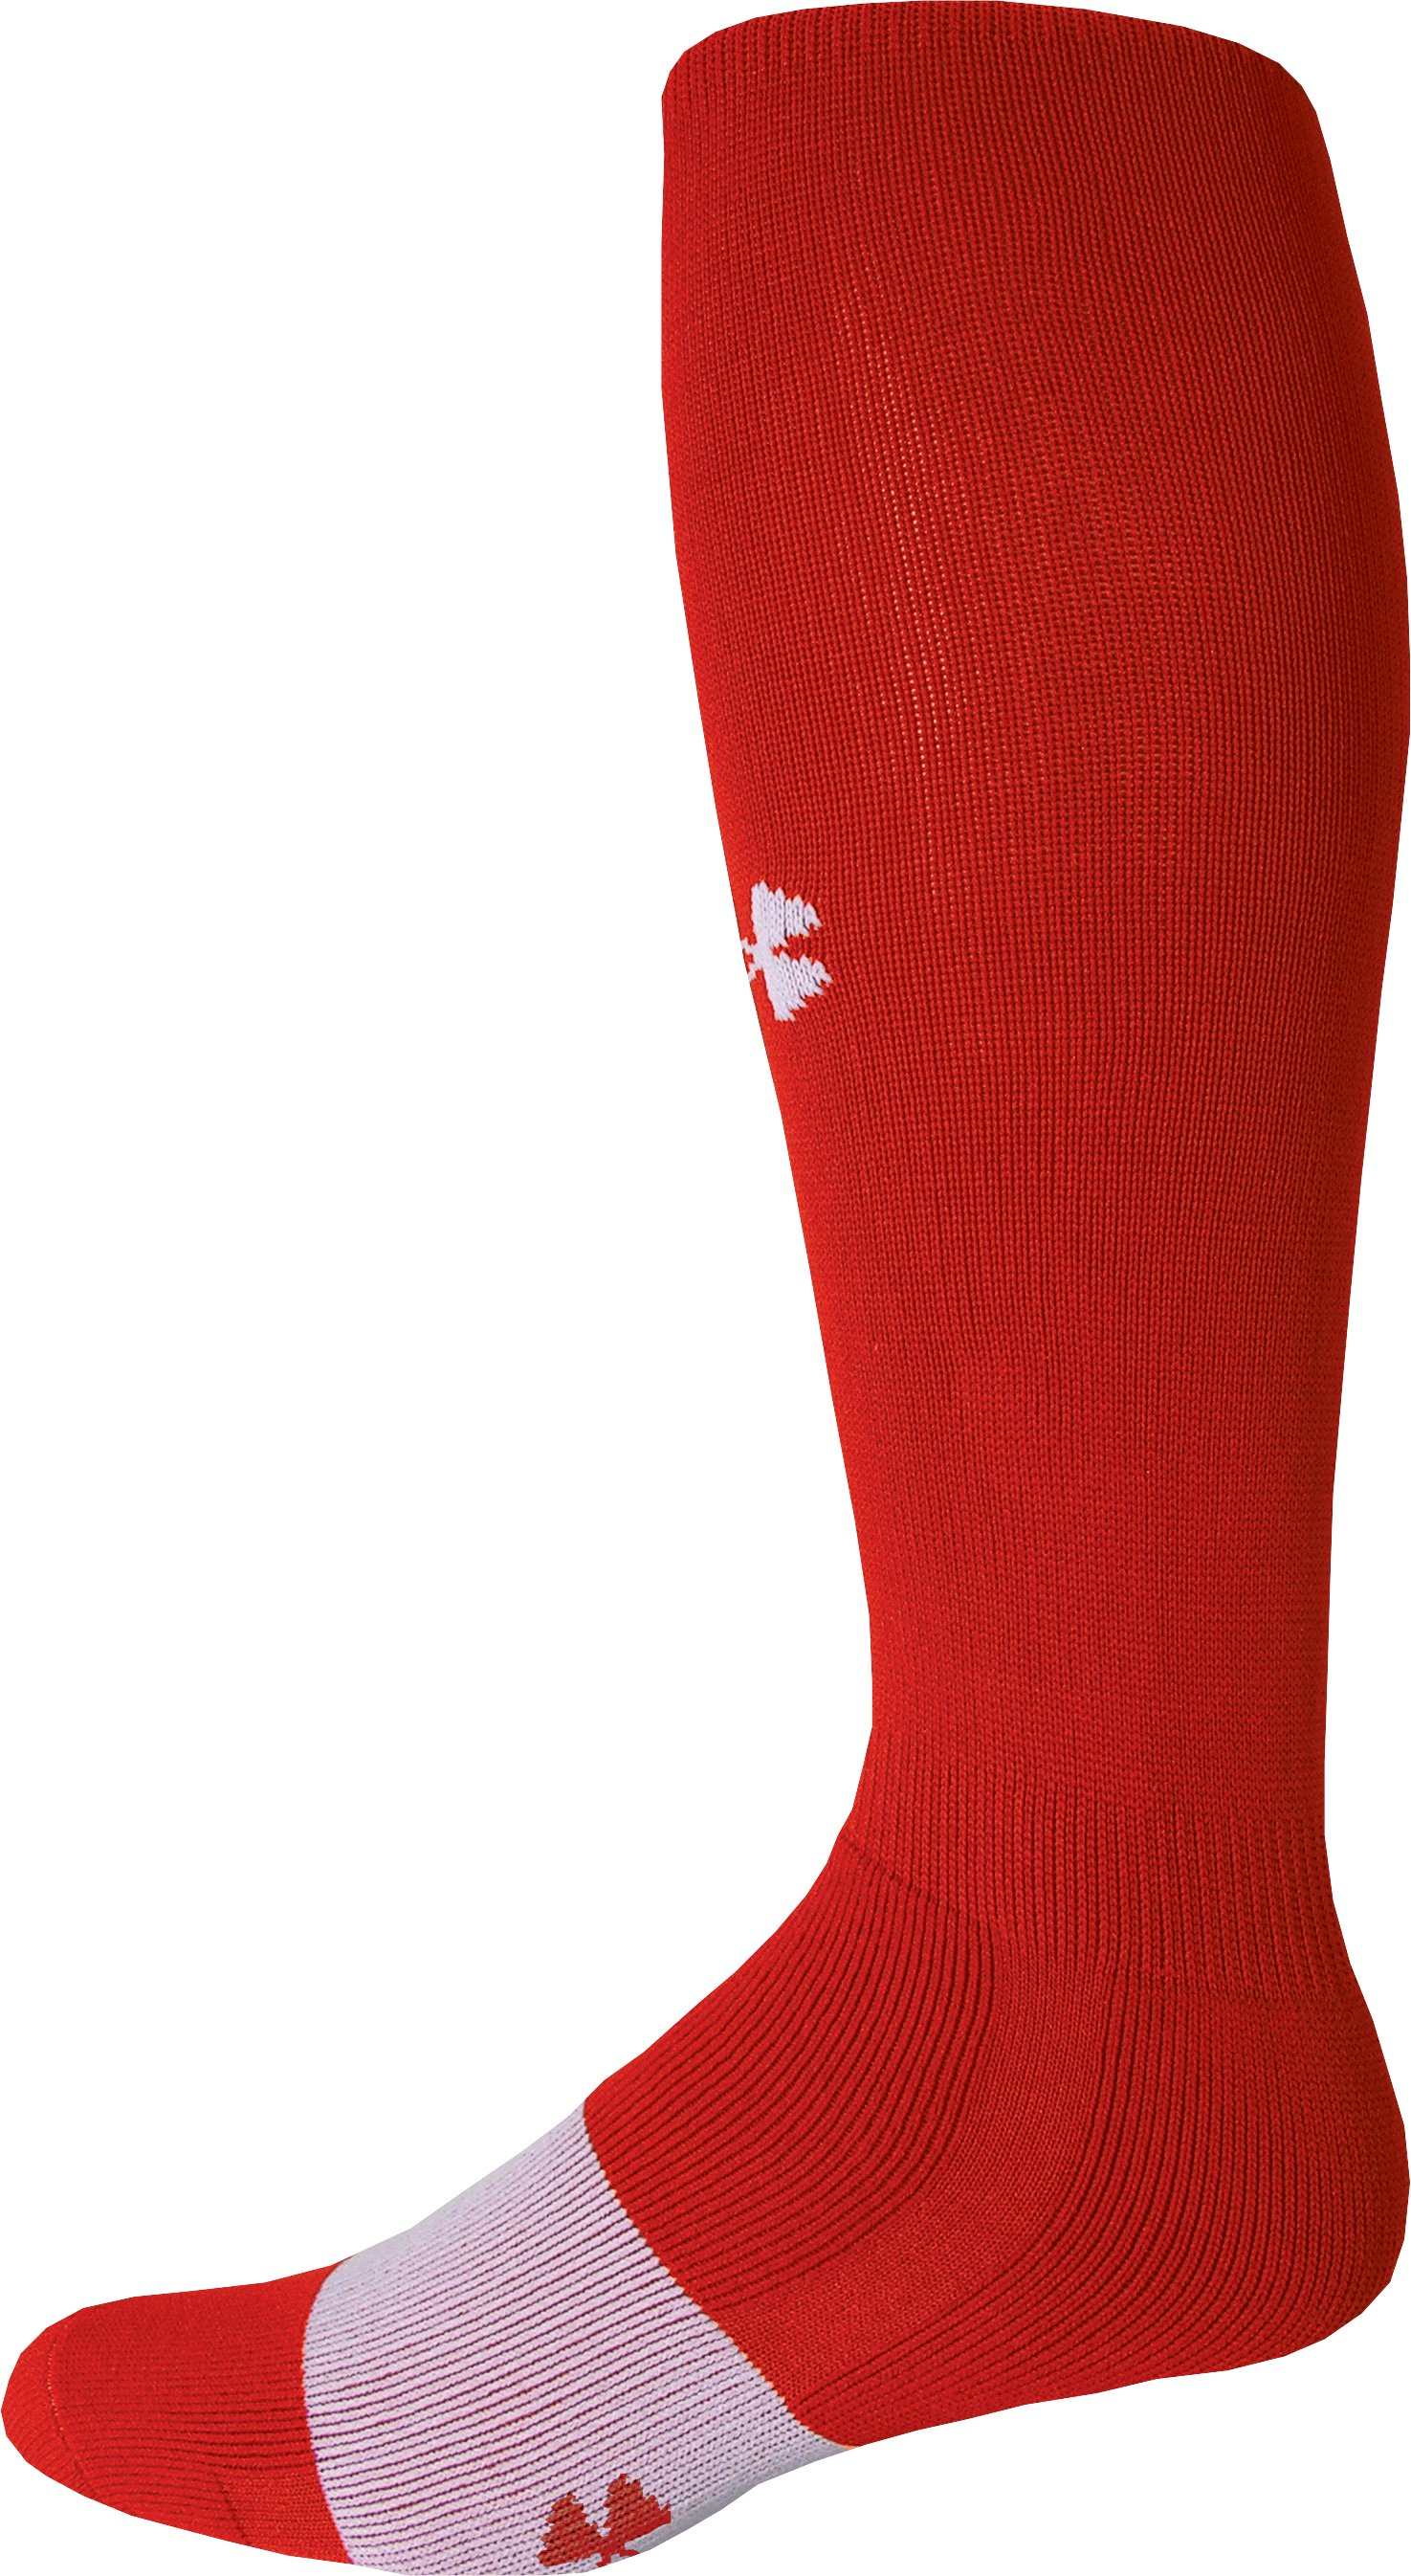 Men's Allsport Sock, Red, undefined